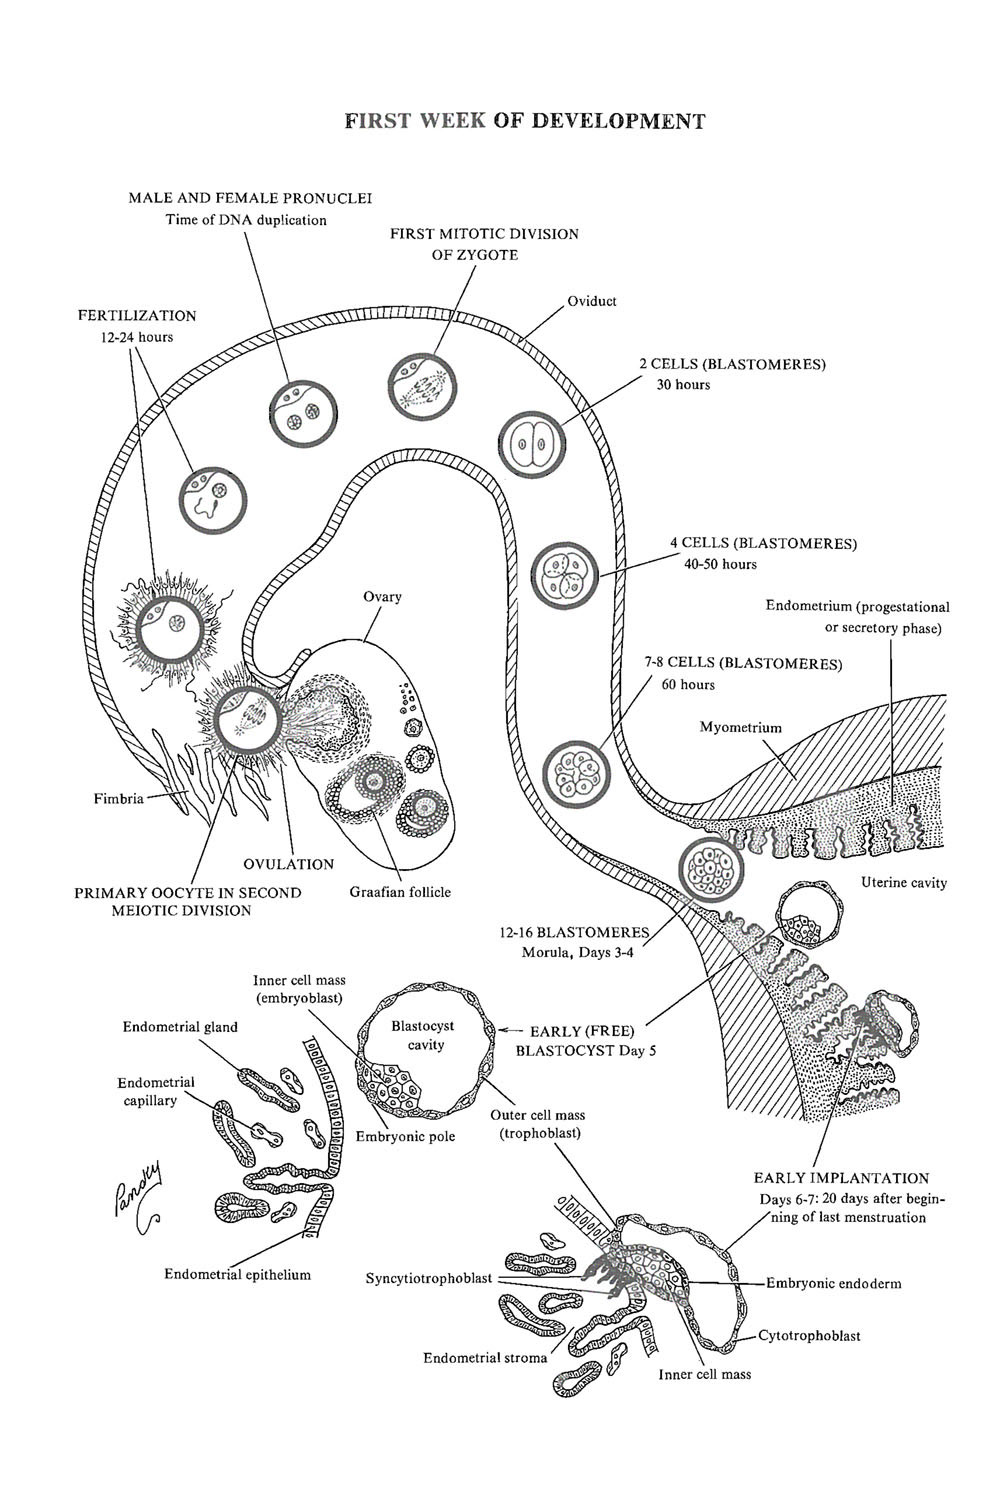 Chapter 14. Week 1 of Embryonic Development: Ovulation to